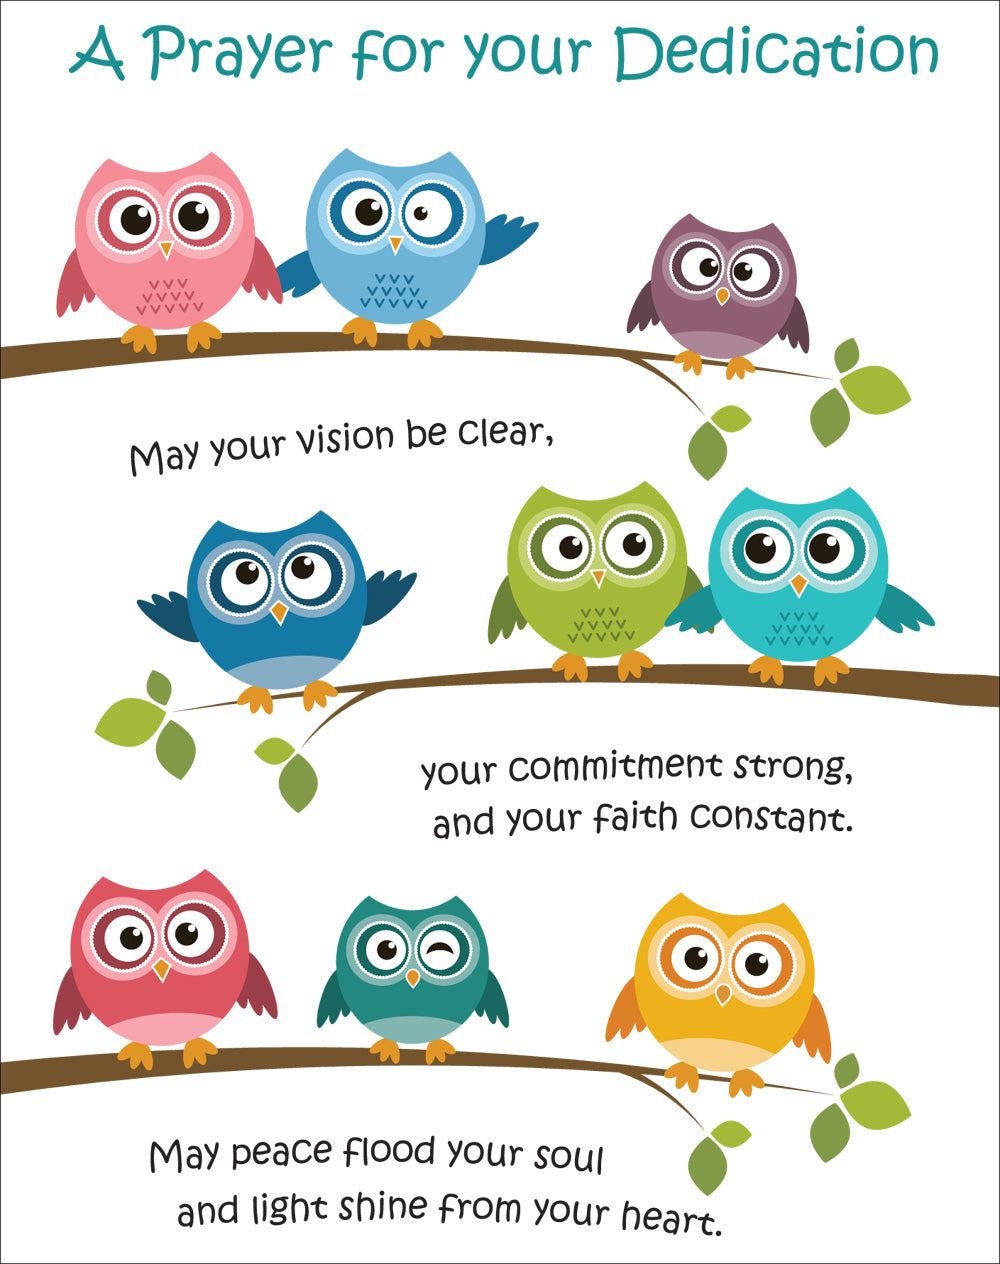 A Prayer For Your Dedication - Owls -  Standard CardA Prayer For Your Dedication - Owls -  Standard Card